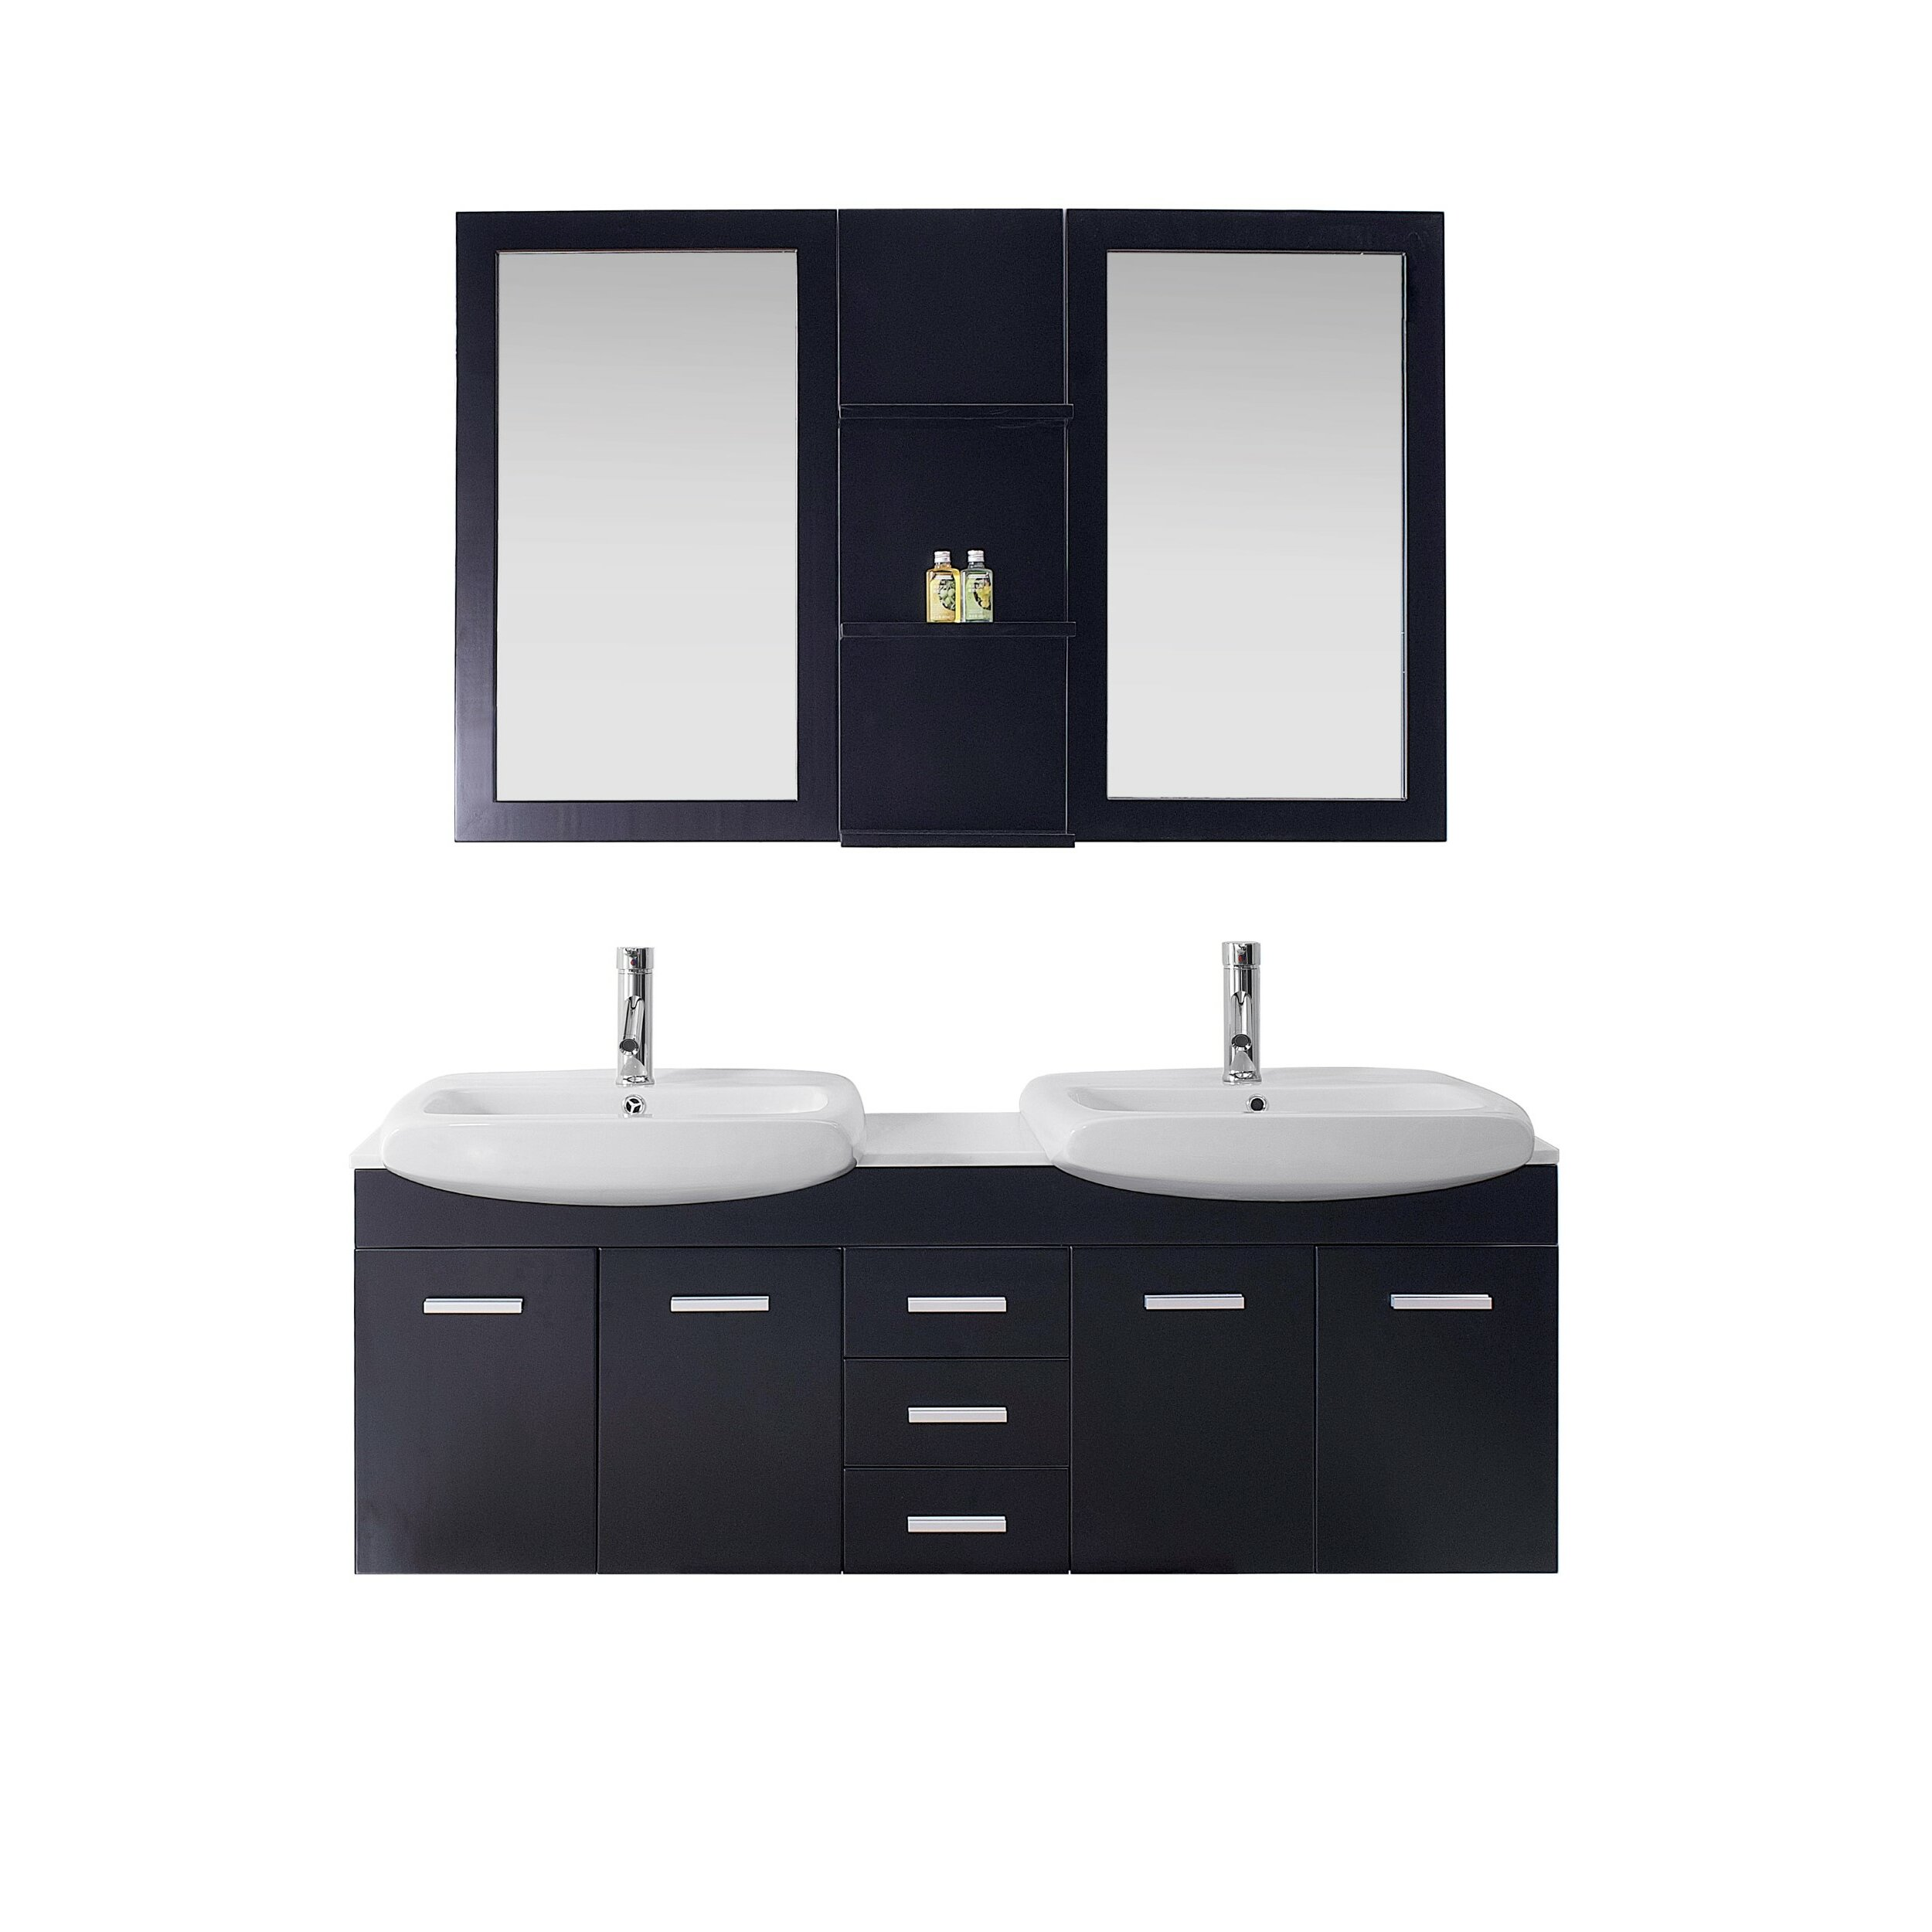 Bathroom vanity and mirror set image mag - Kona modern bathroom vanity set ...